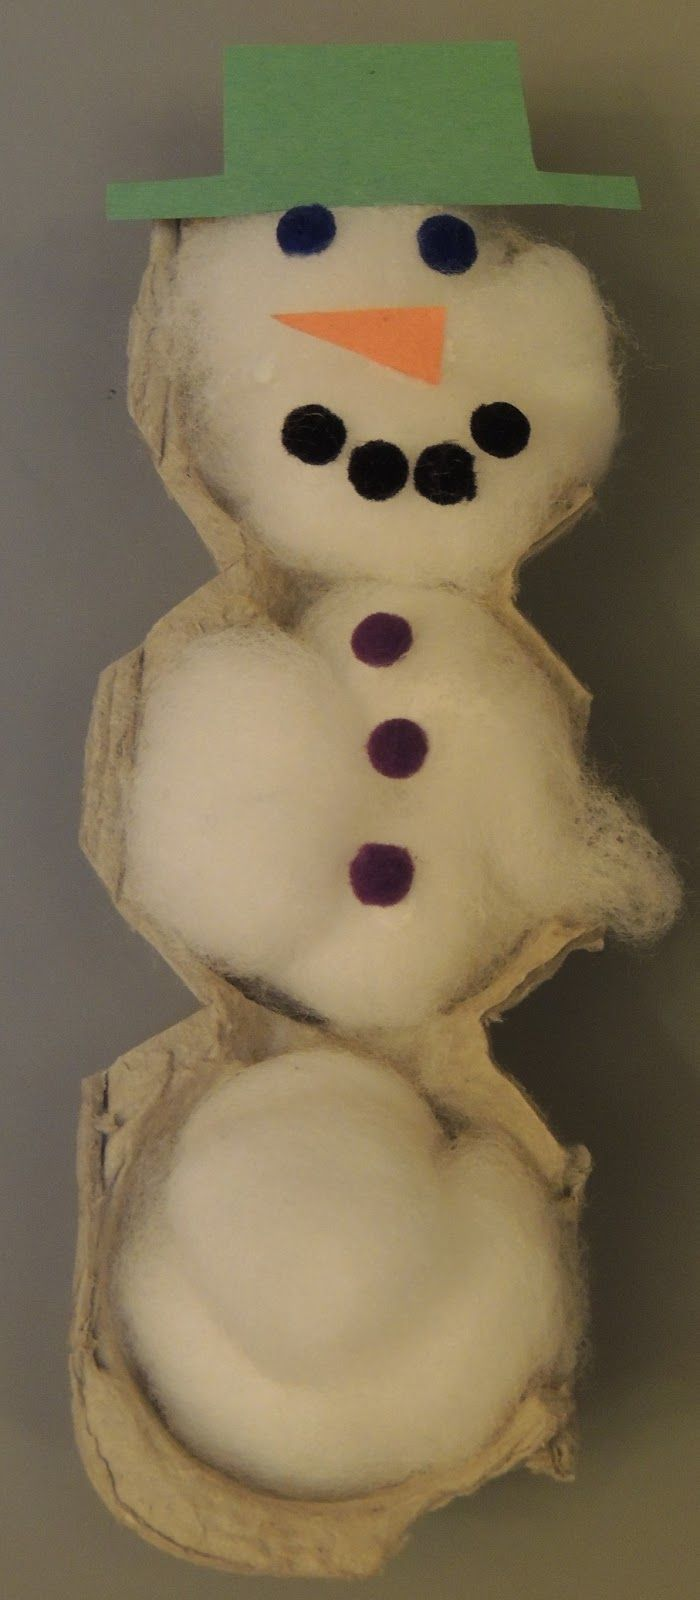 Child Care Resources: Egg Carton Snowman